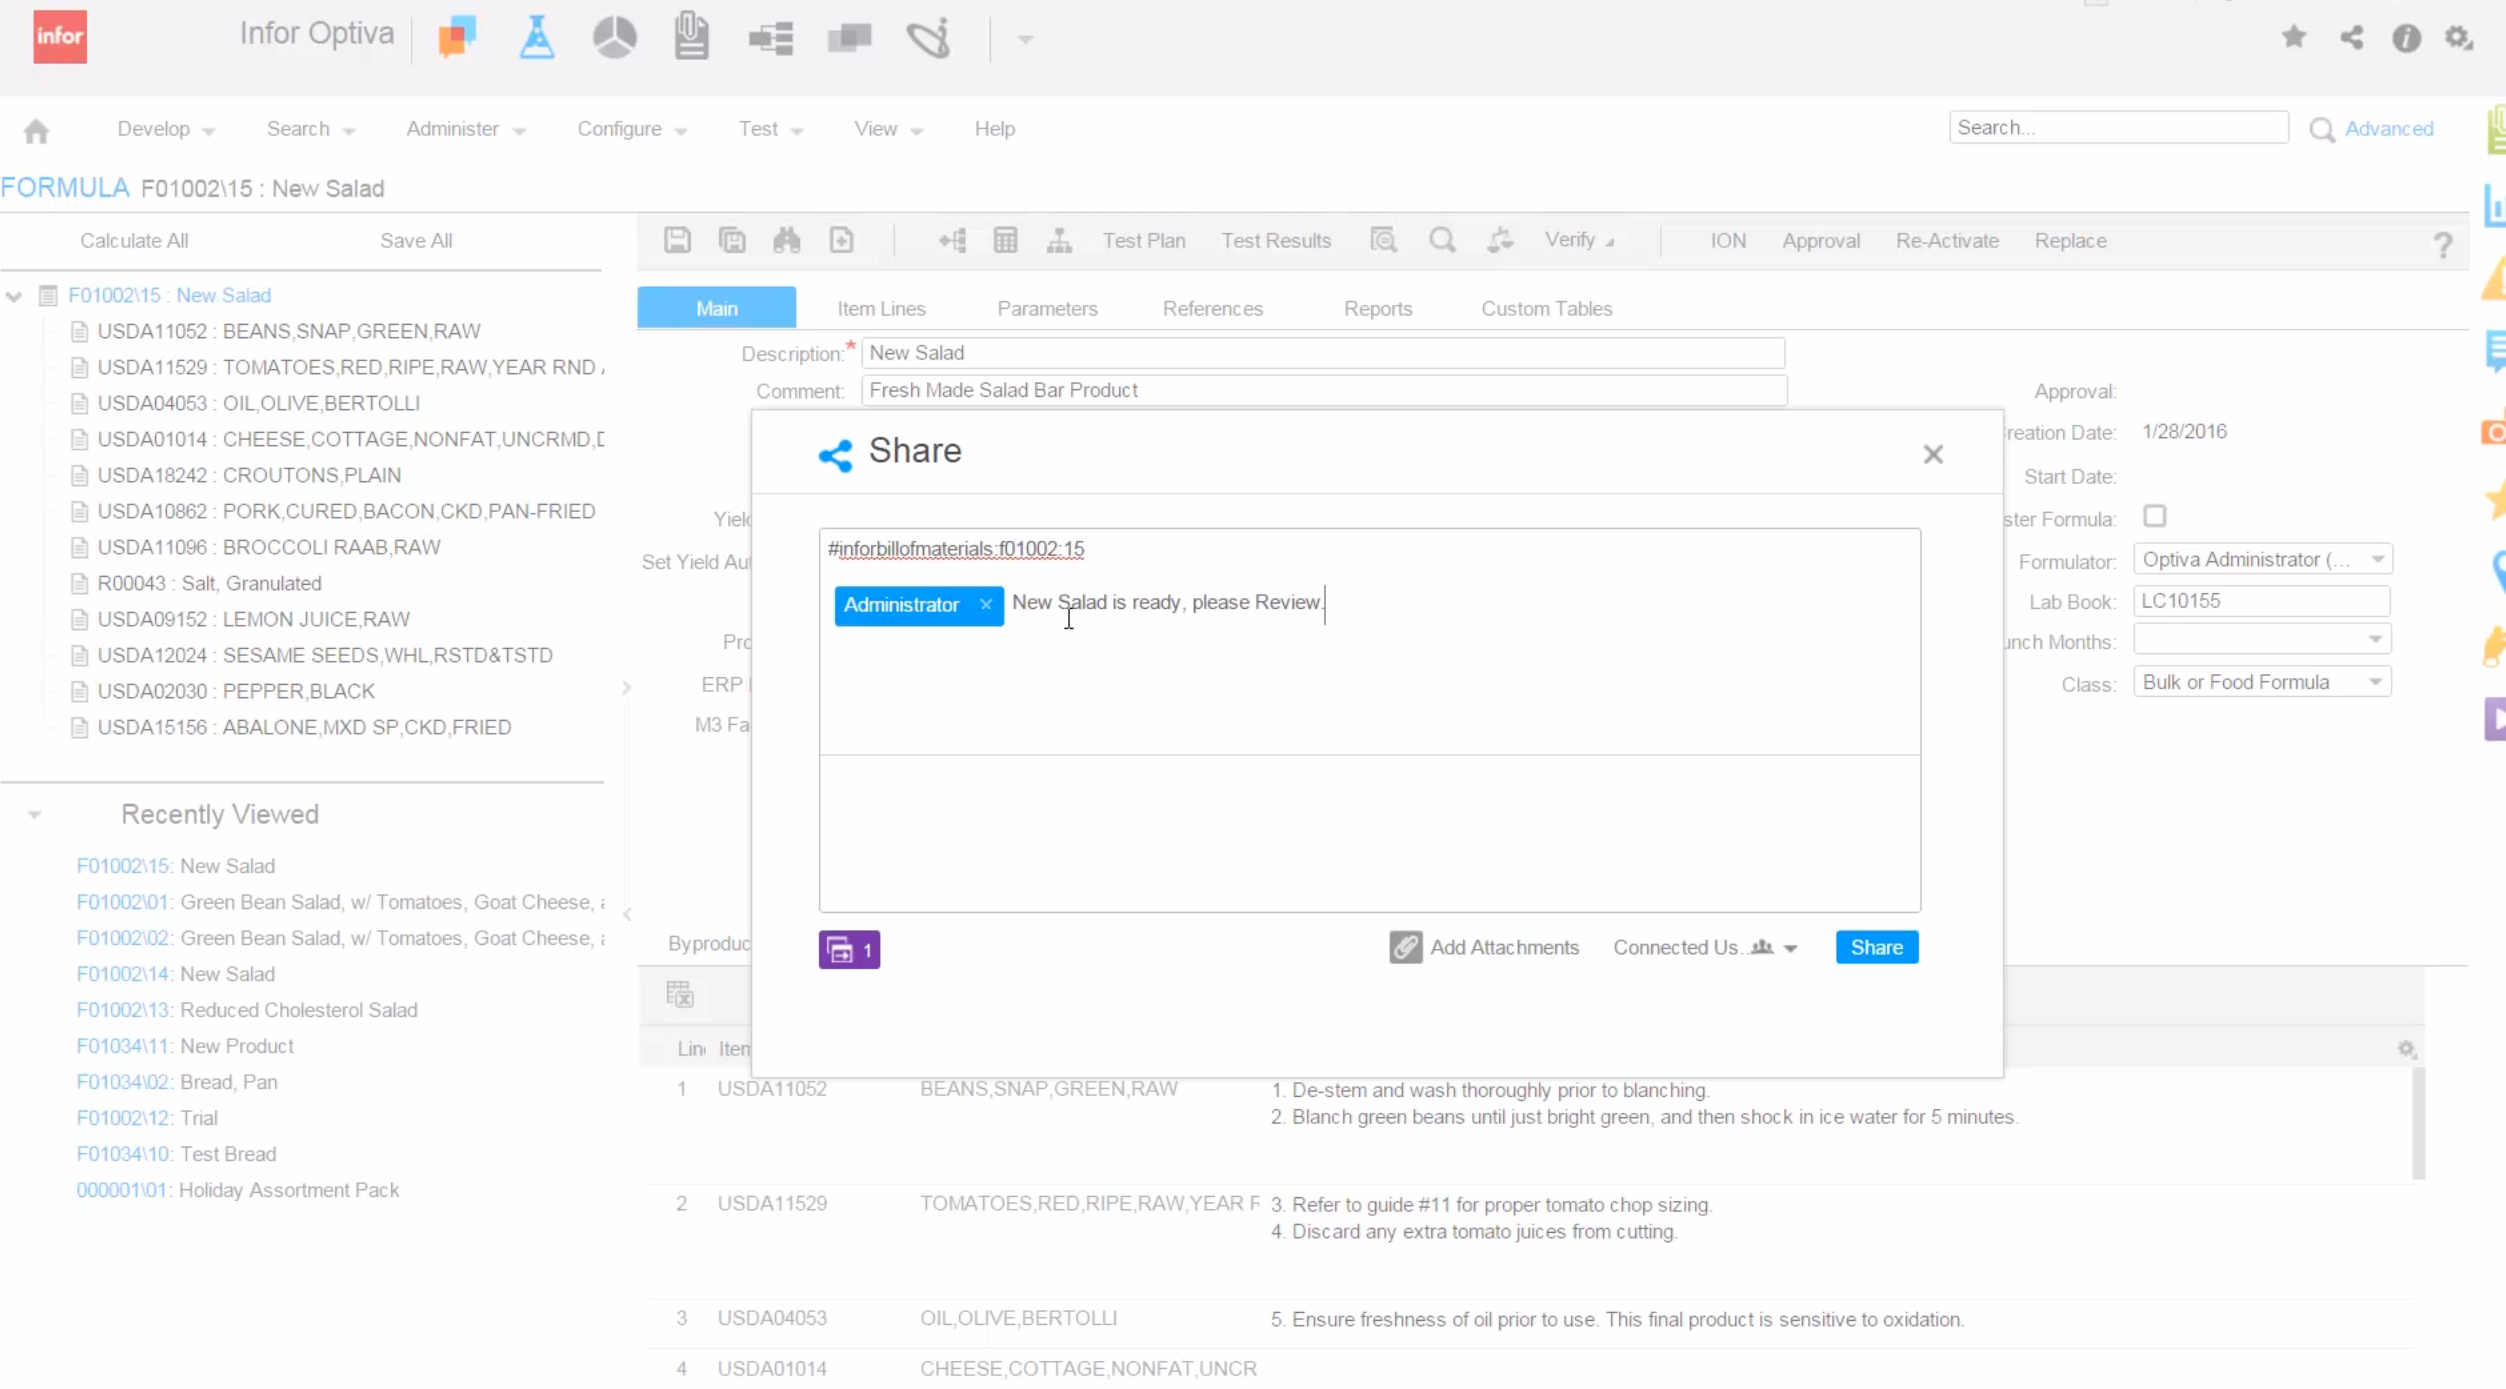 Infor Optiva Demo - Update your management of new ideas in real time on current projects